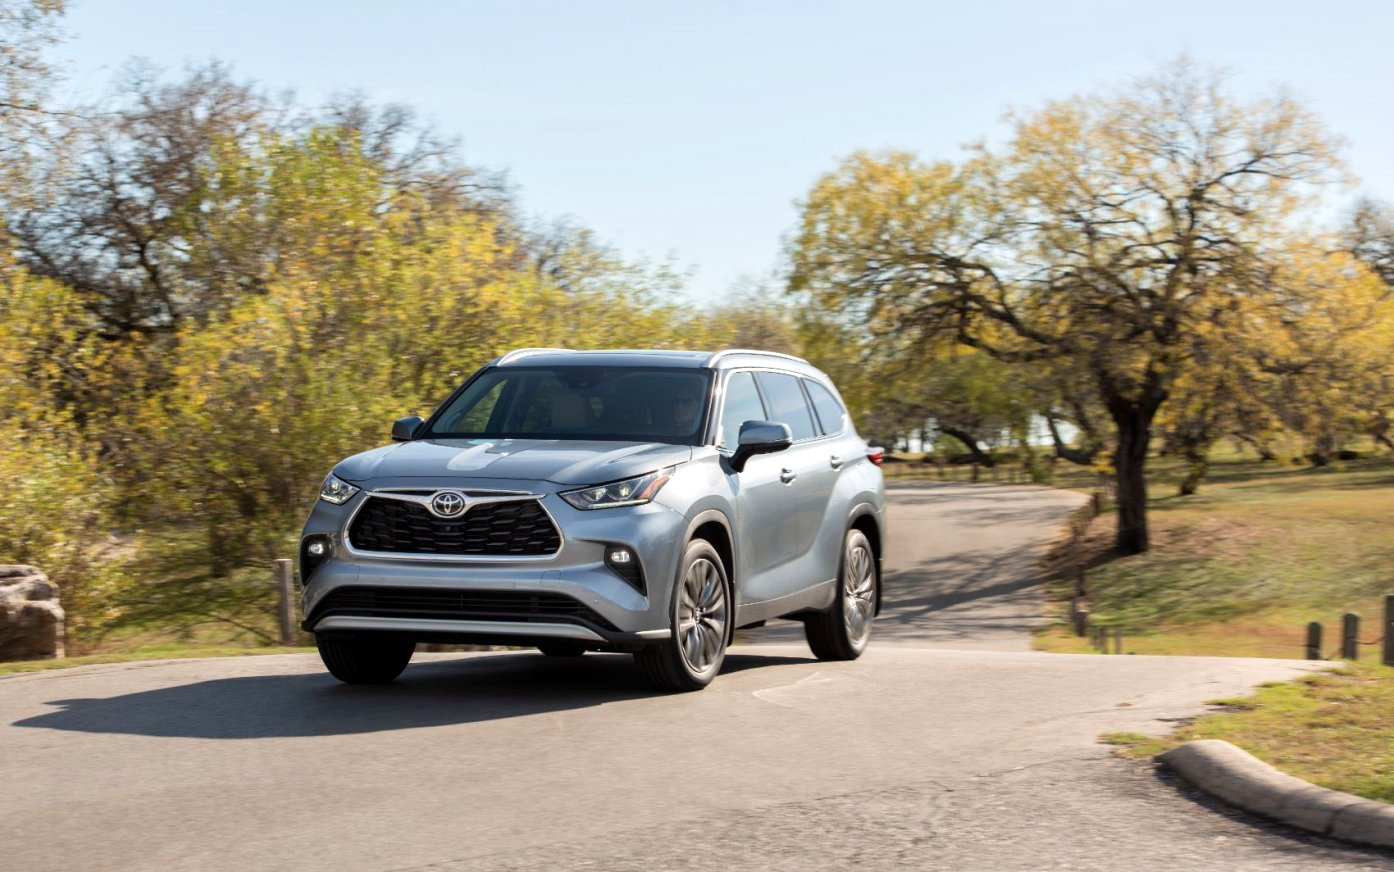 toyota highlander 2020 review Price and Review